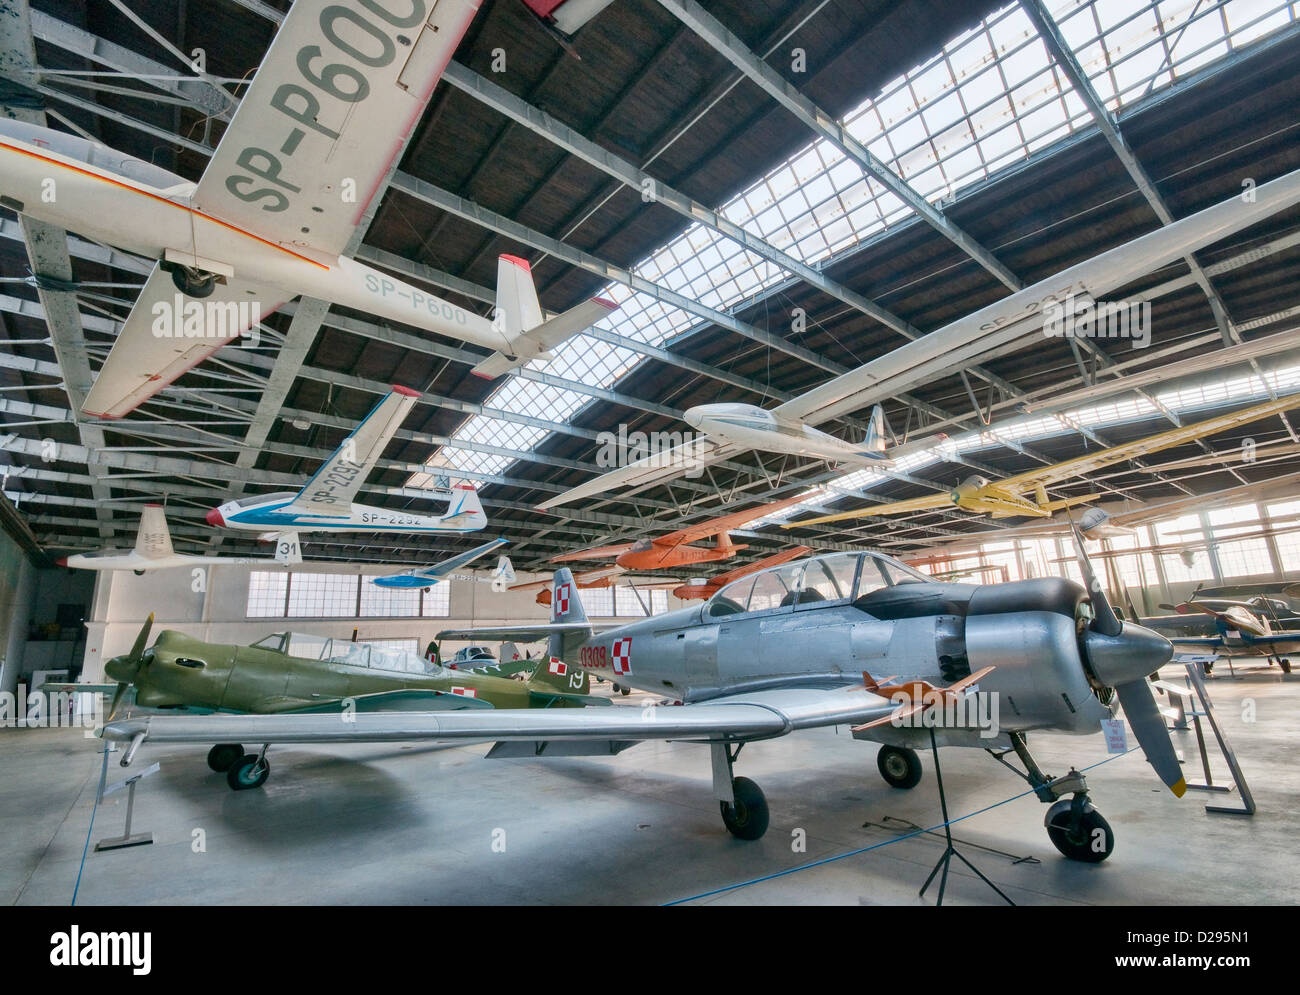 PZL TS-8 Bies, 1950's trainer aircraft, Polish Aviation Museum in Krakow, Poland - Stock Image